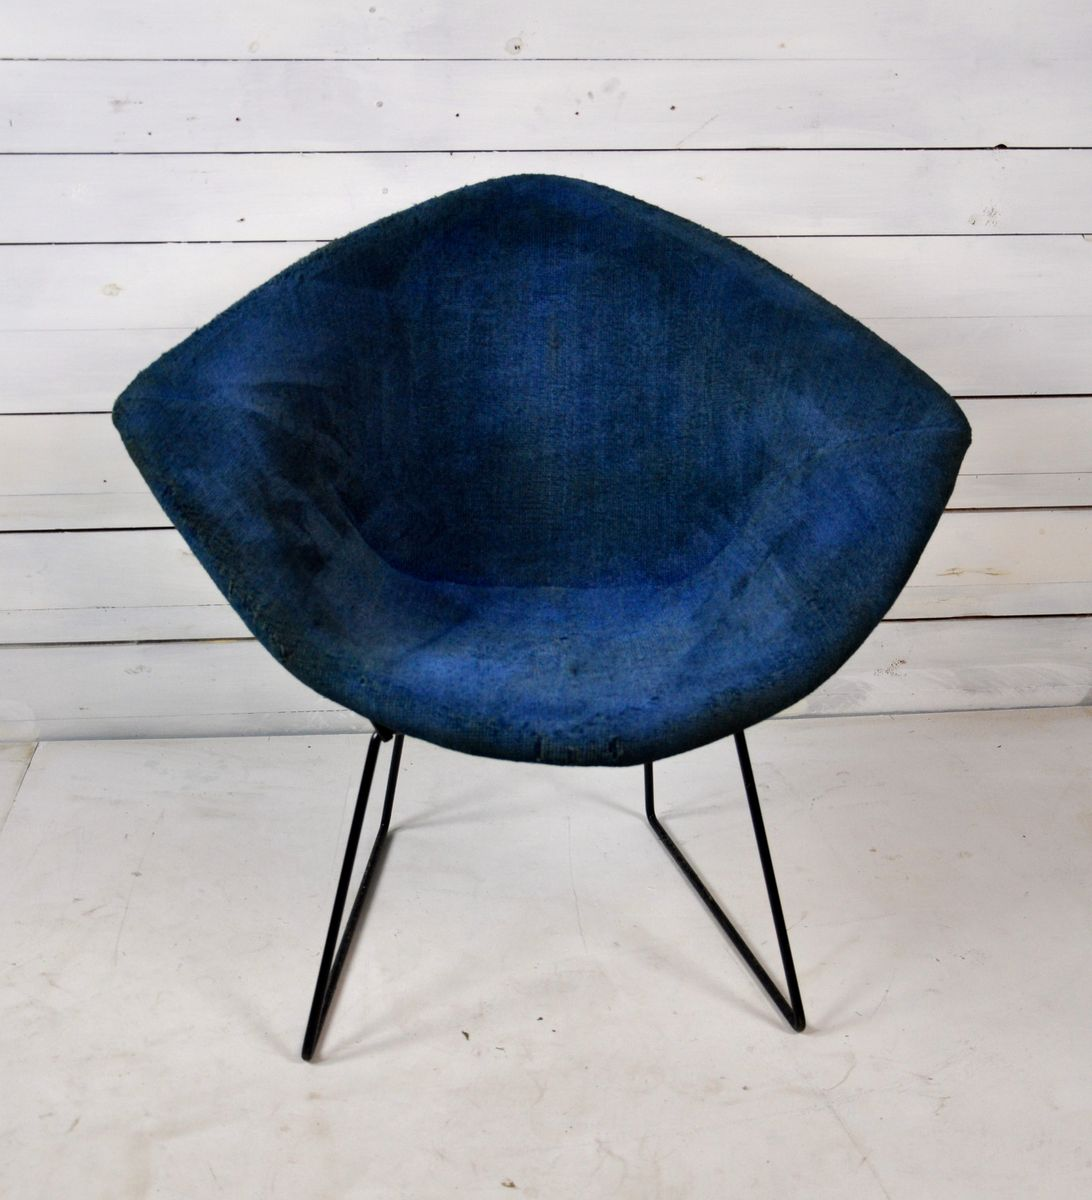 Diamond Chair von Harry Bertoia für Knoll, 1950er